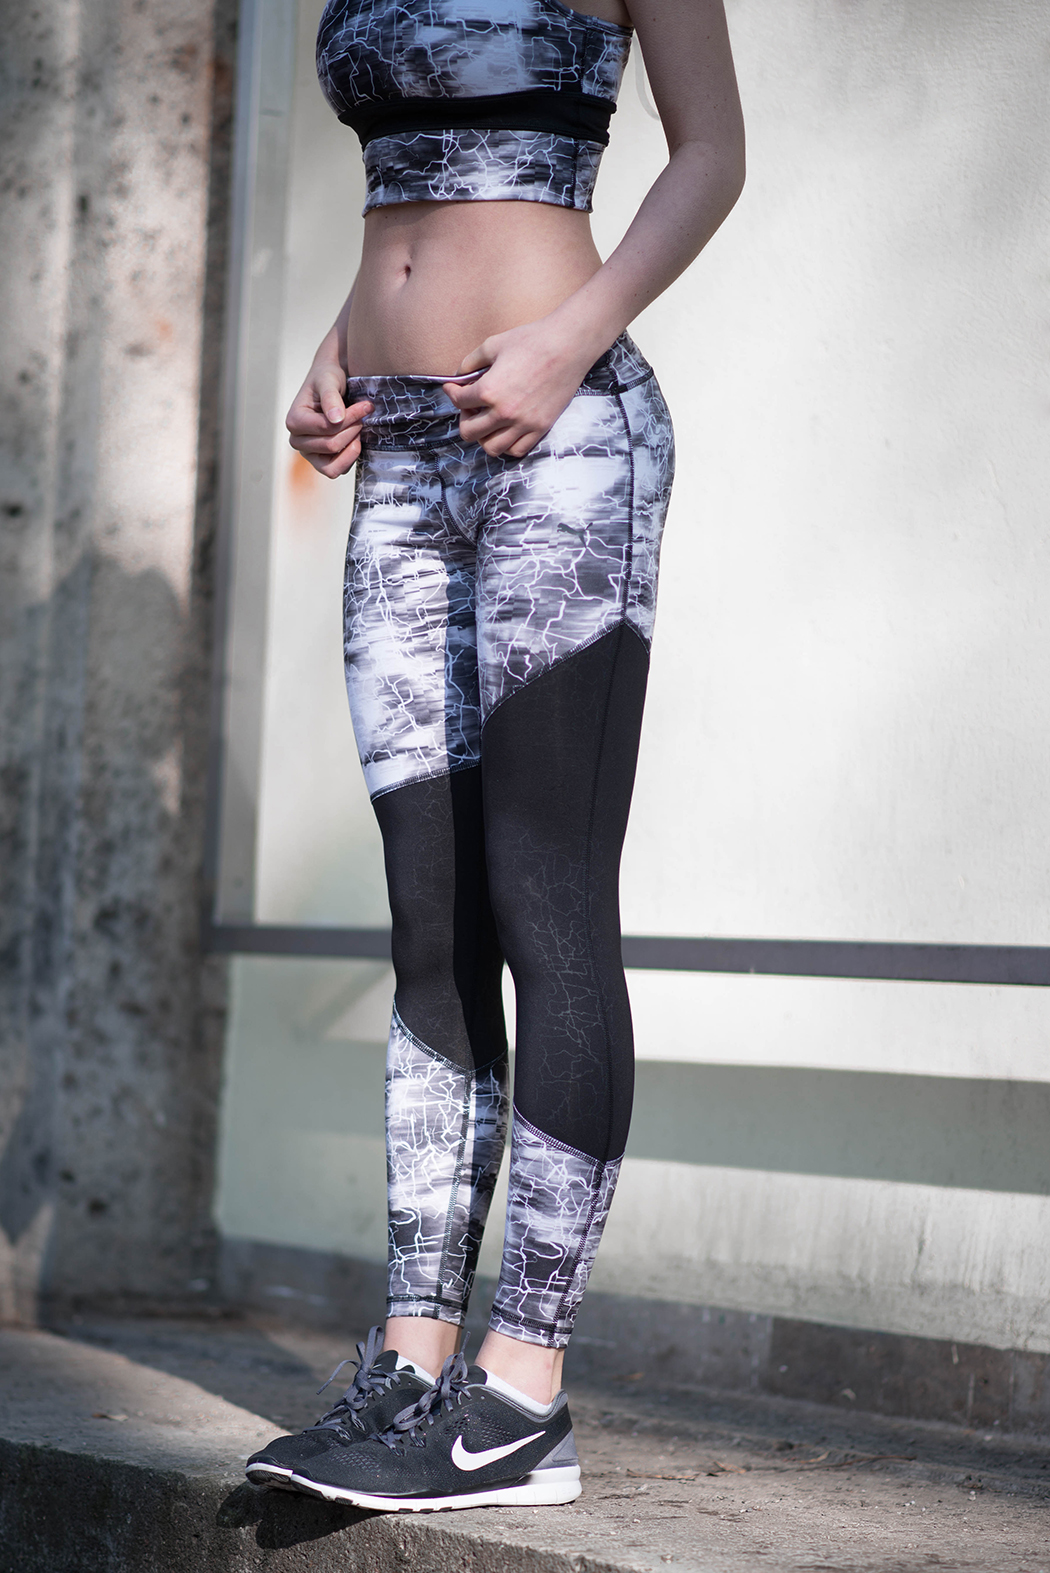 Puma-Crop-Top-black-and-white-Fitnessblogger-München-Fitnessblog-Deutschland-3